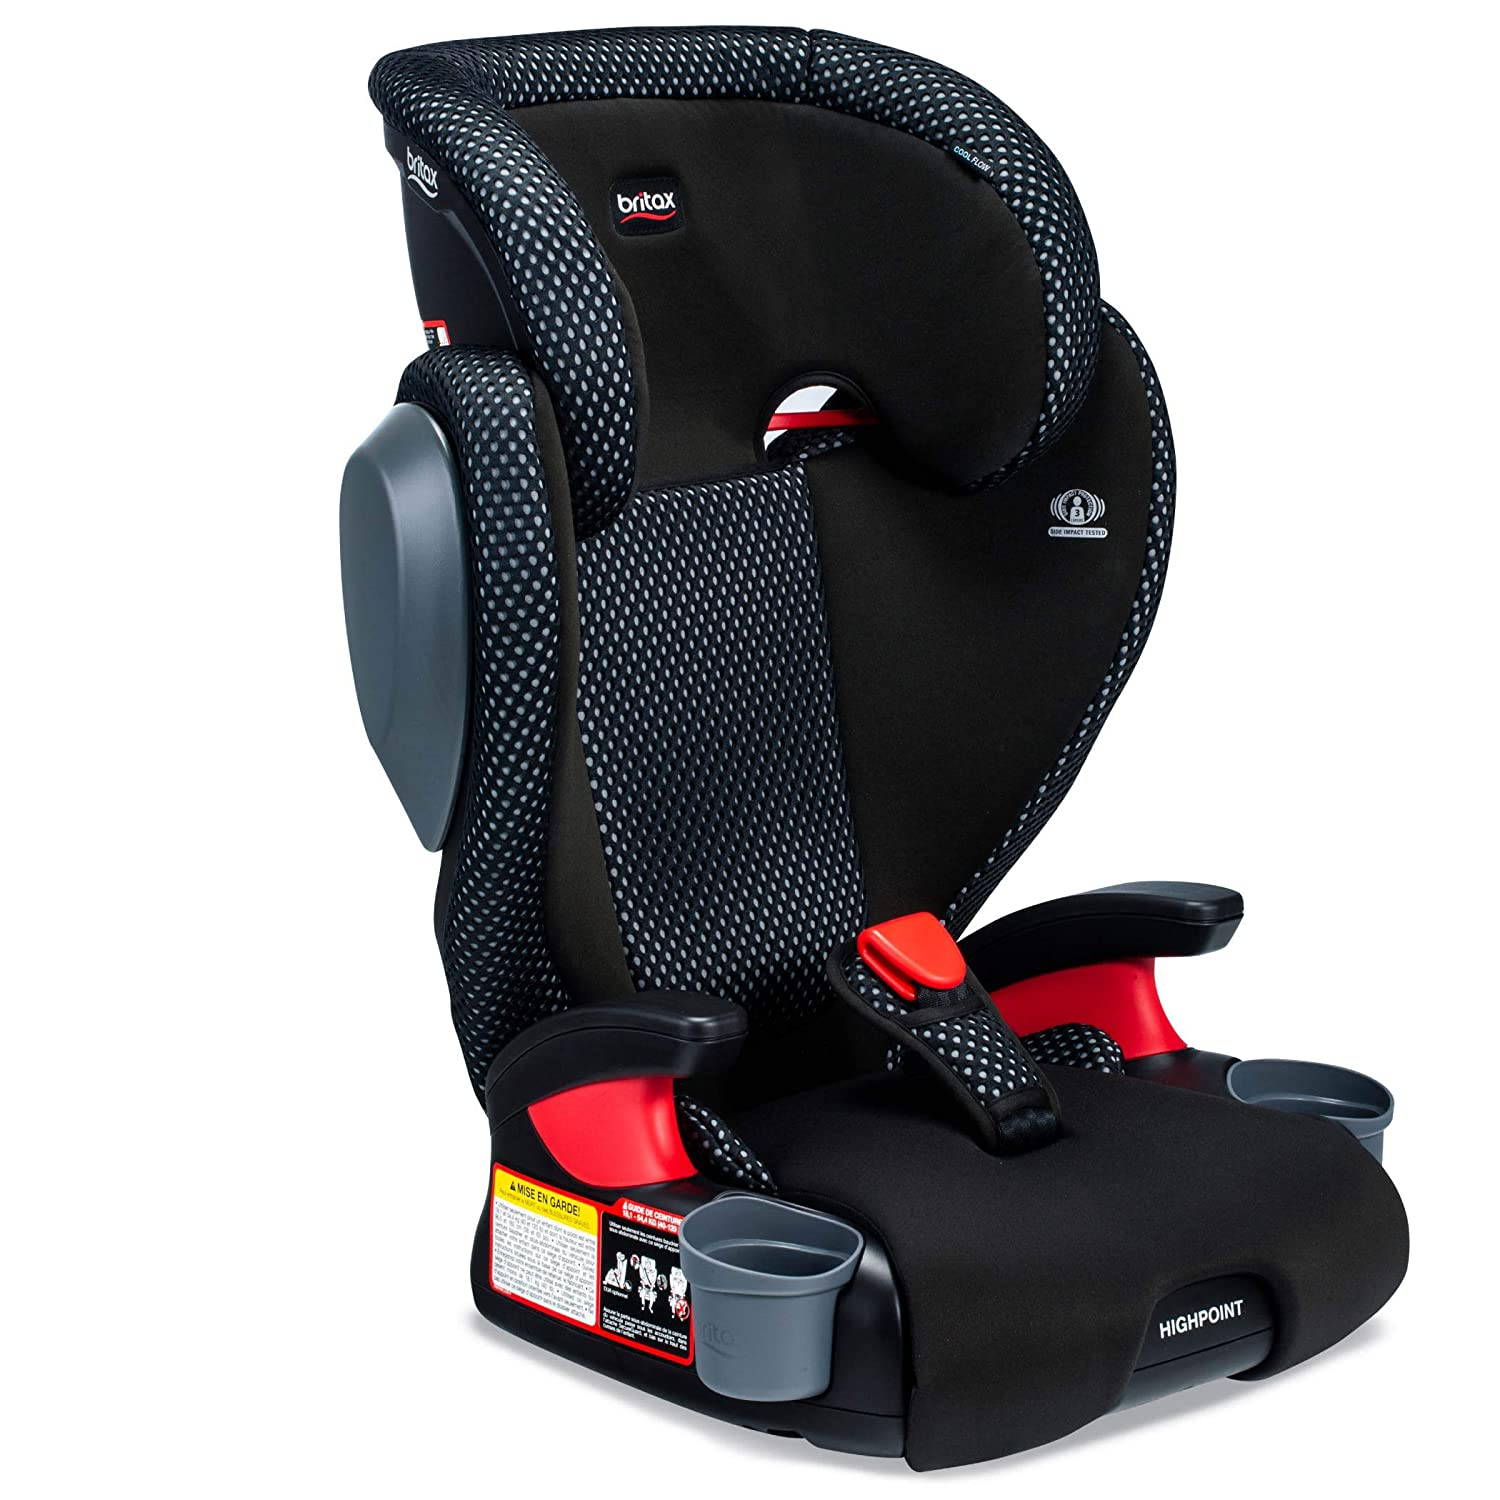 Britax USA Highpoint 2-Stage Belt-Positioning Booster Cool Flow Ventilating Fabric Car Seat - Highback and Backless - 3 Layer Impact Protection - 40 to 120 Pounds, Gray